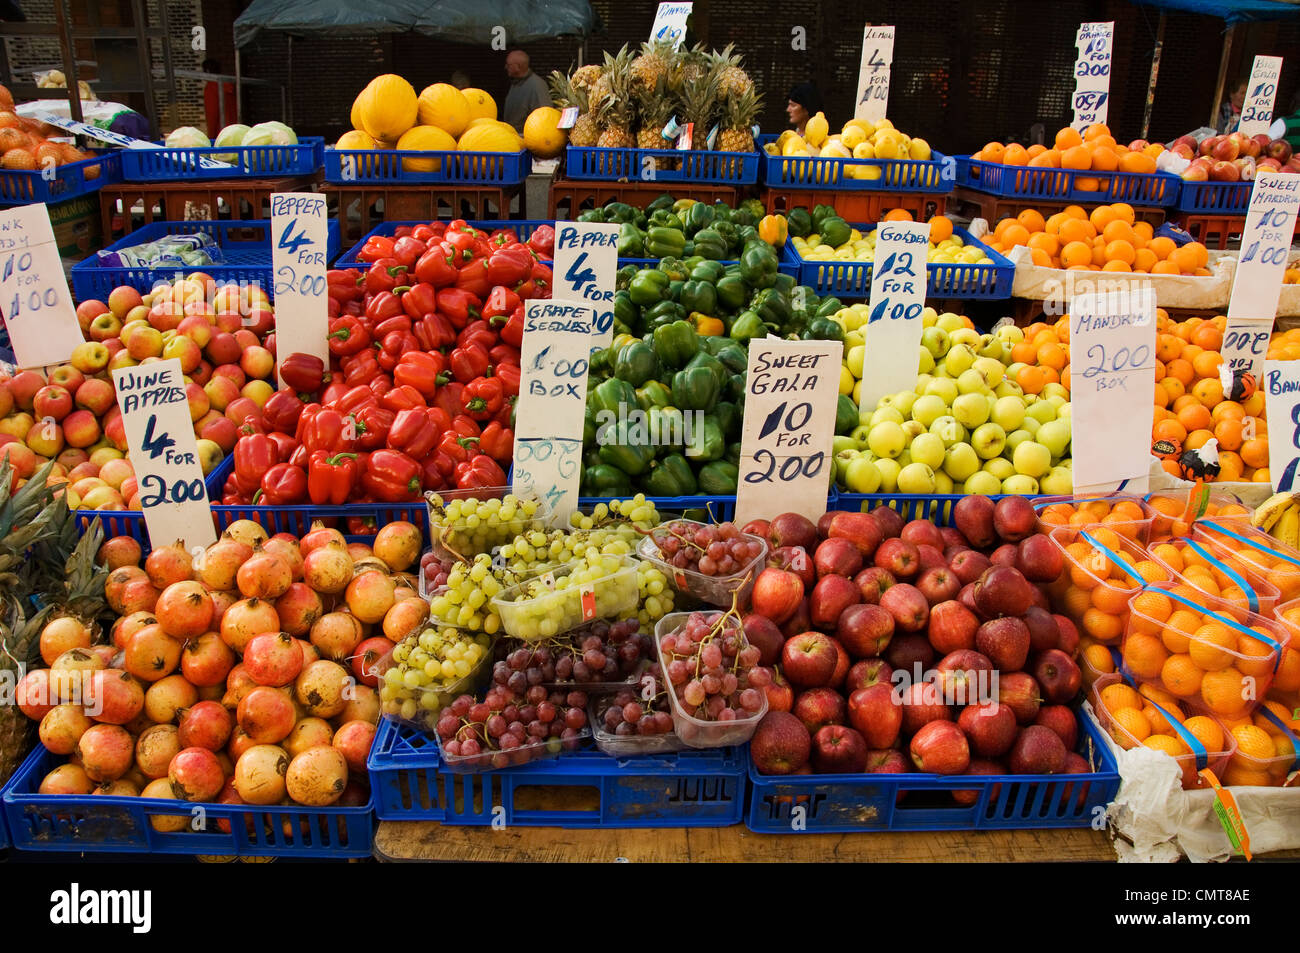 The famous Moore Street fruit and vegetable market in Dublin City center, Ireland - Stock Image